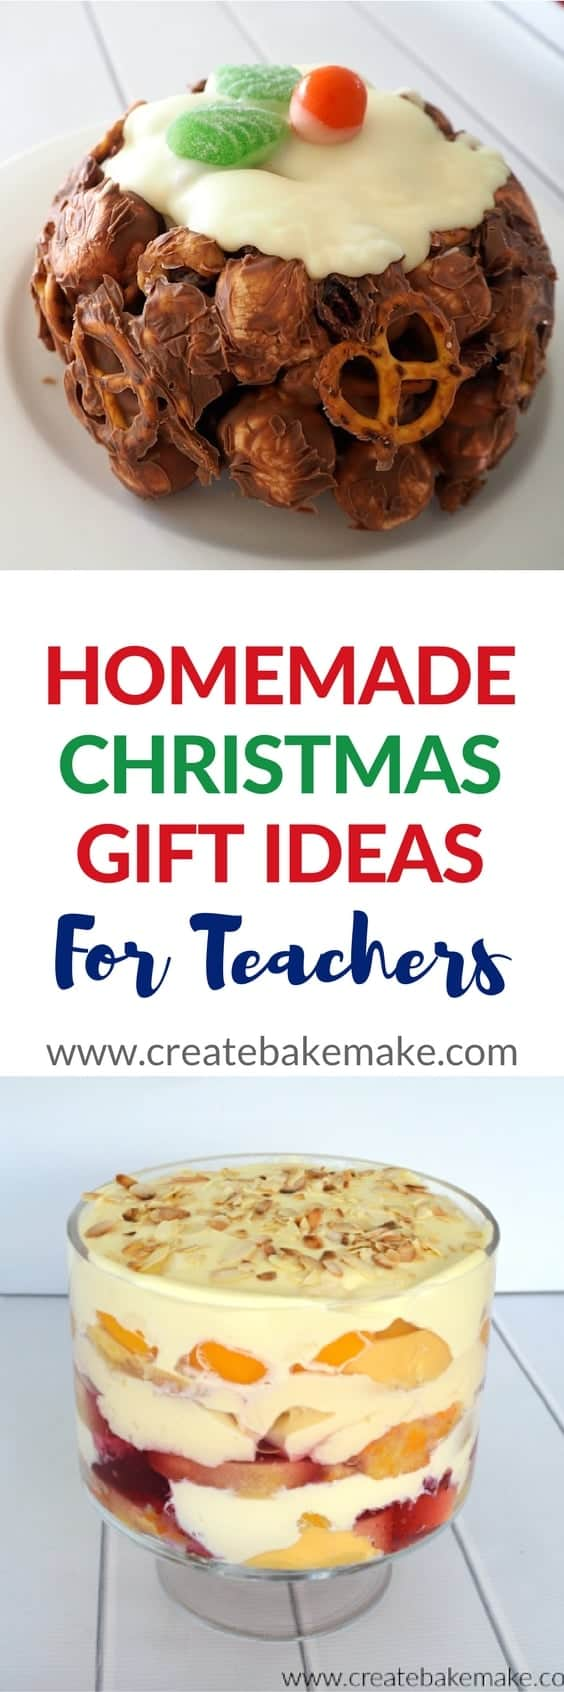 Homemade Christmas Gifts for Teachers - Create Bake Make